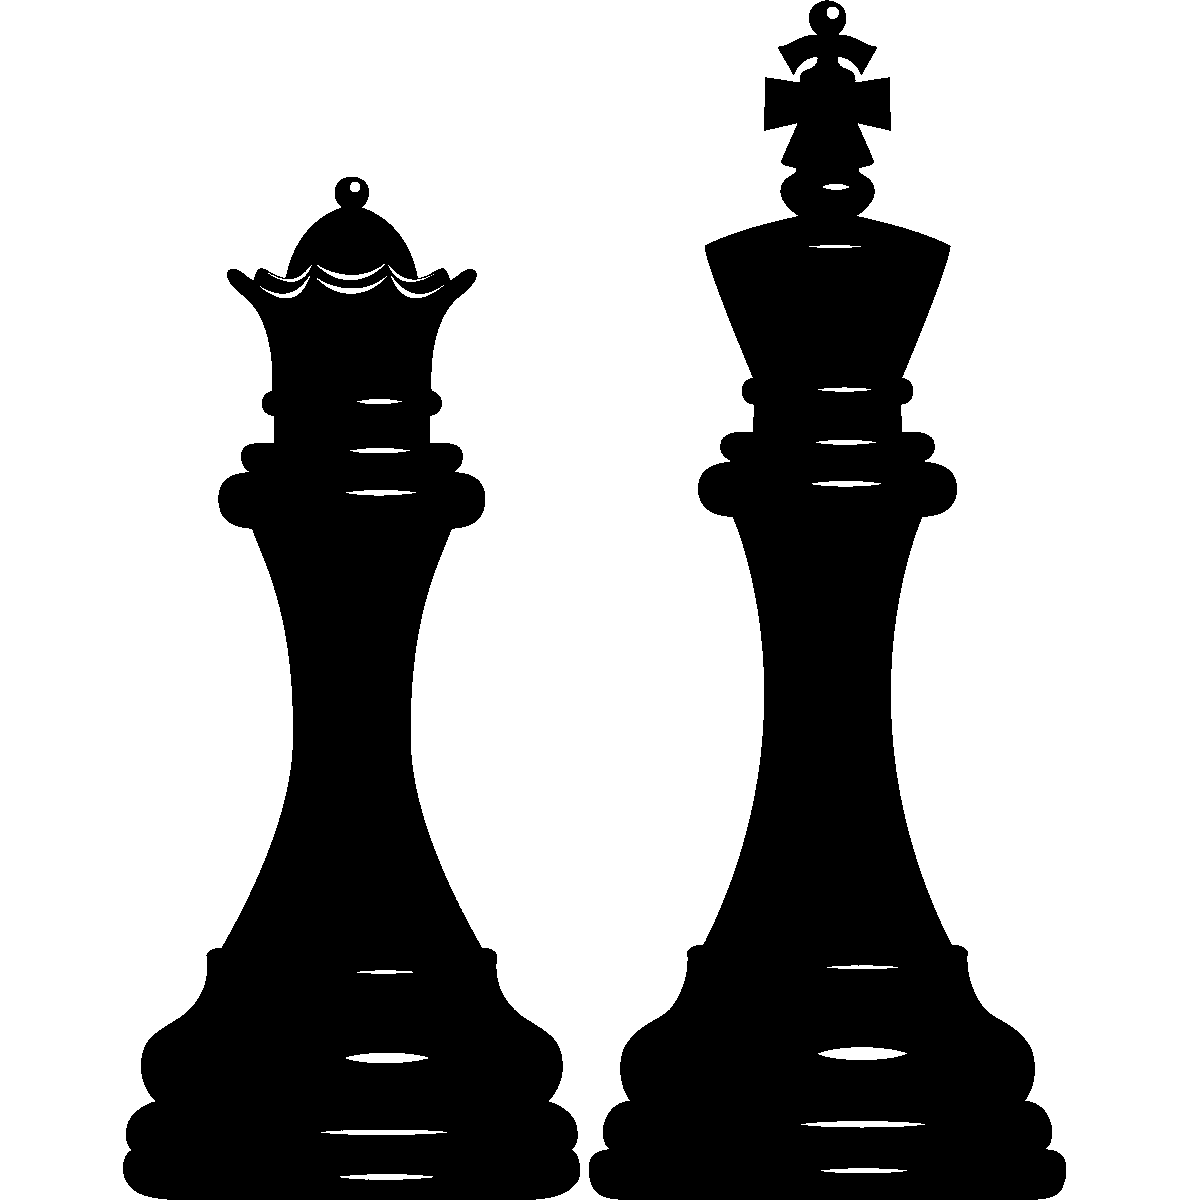 Queen clipart chess piece. Png free images toppng